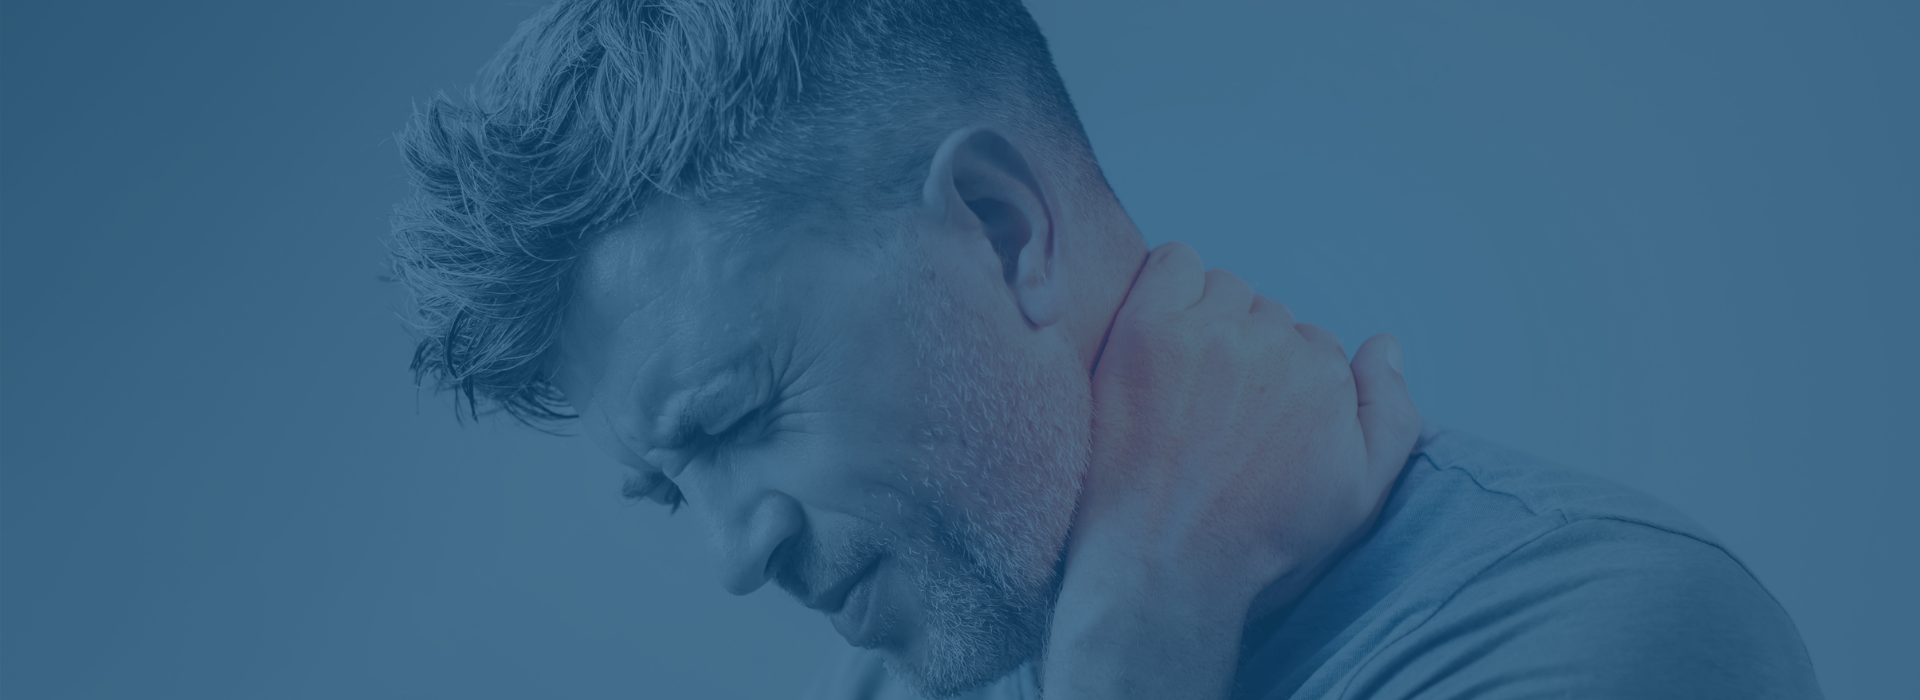 Neck physiotherapy pivotal motion | Pivotal Motion